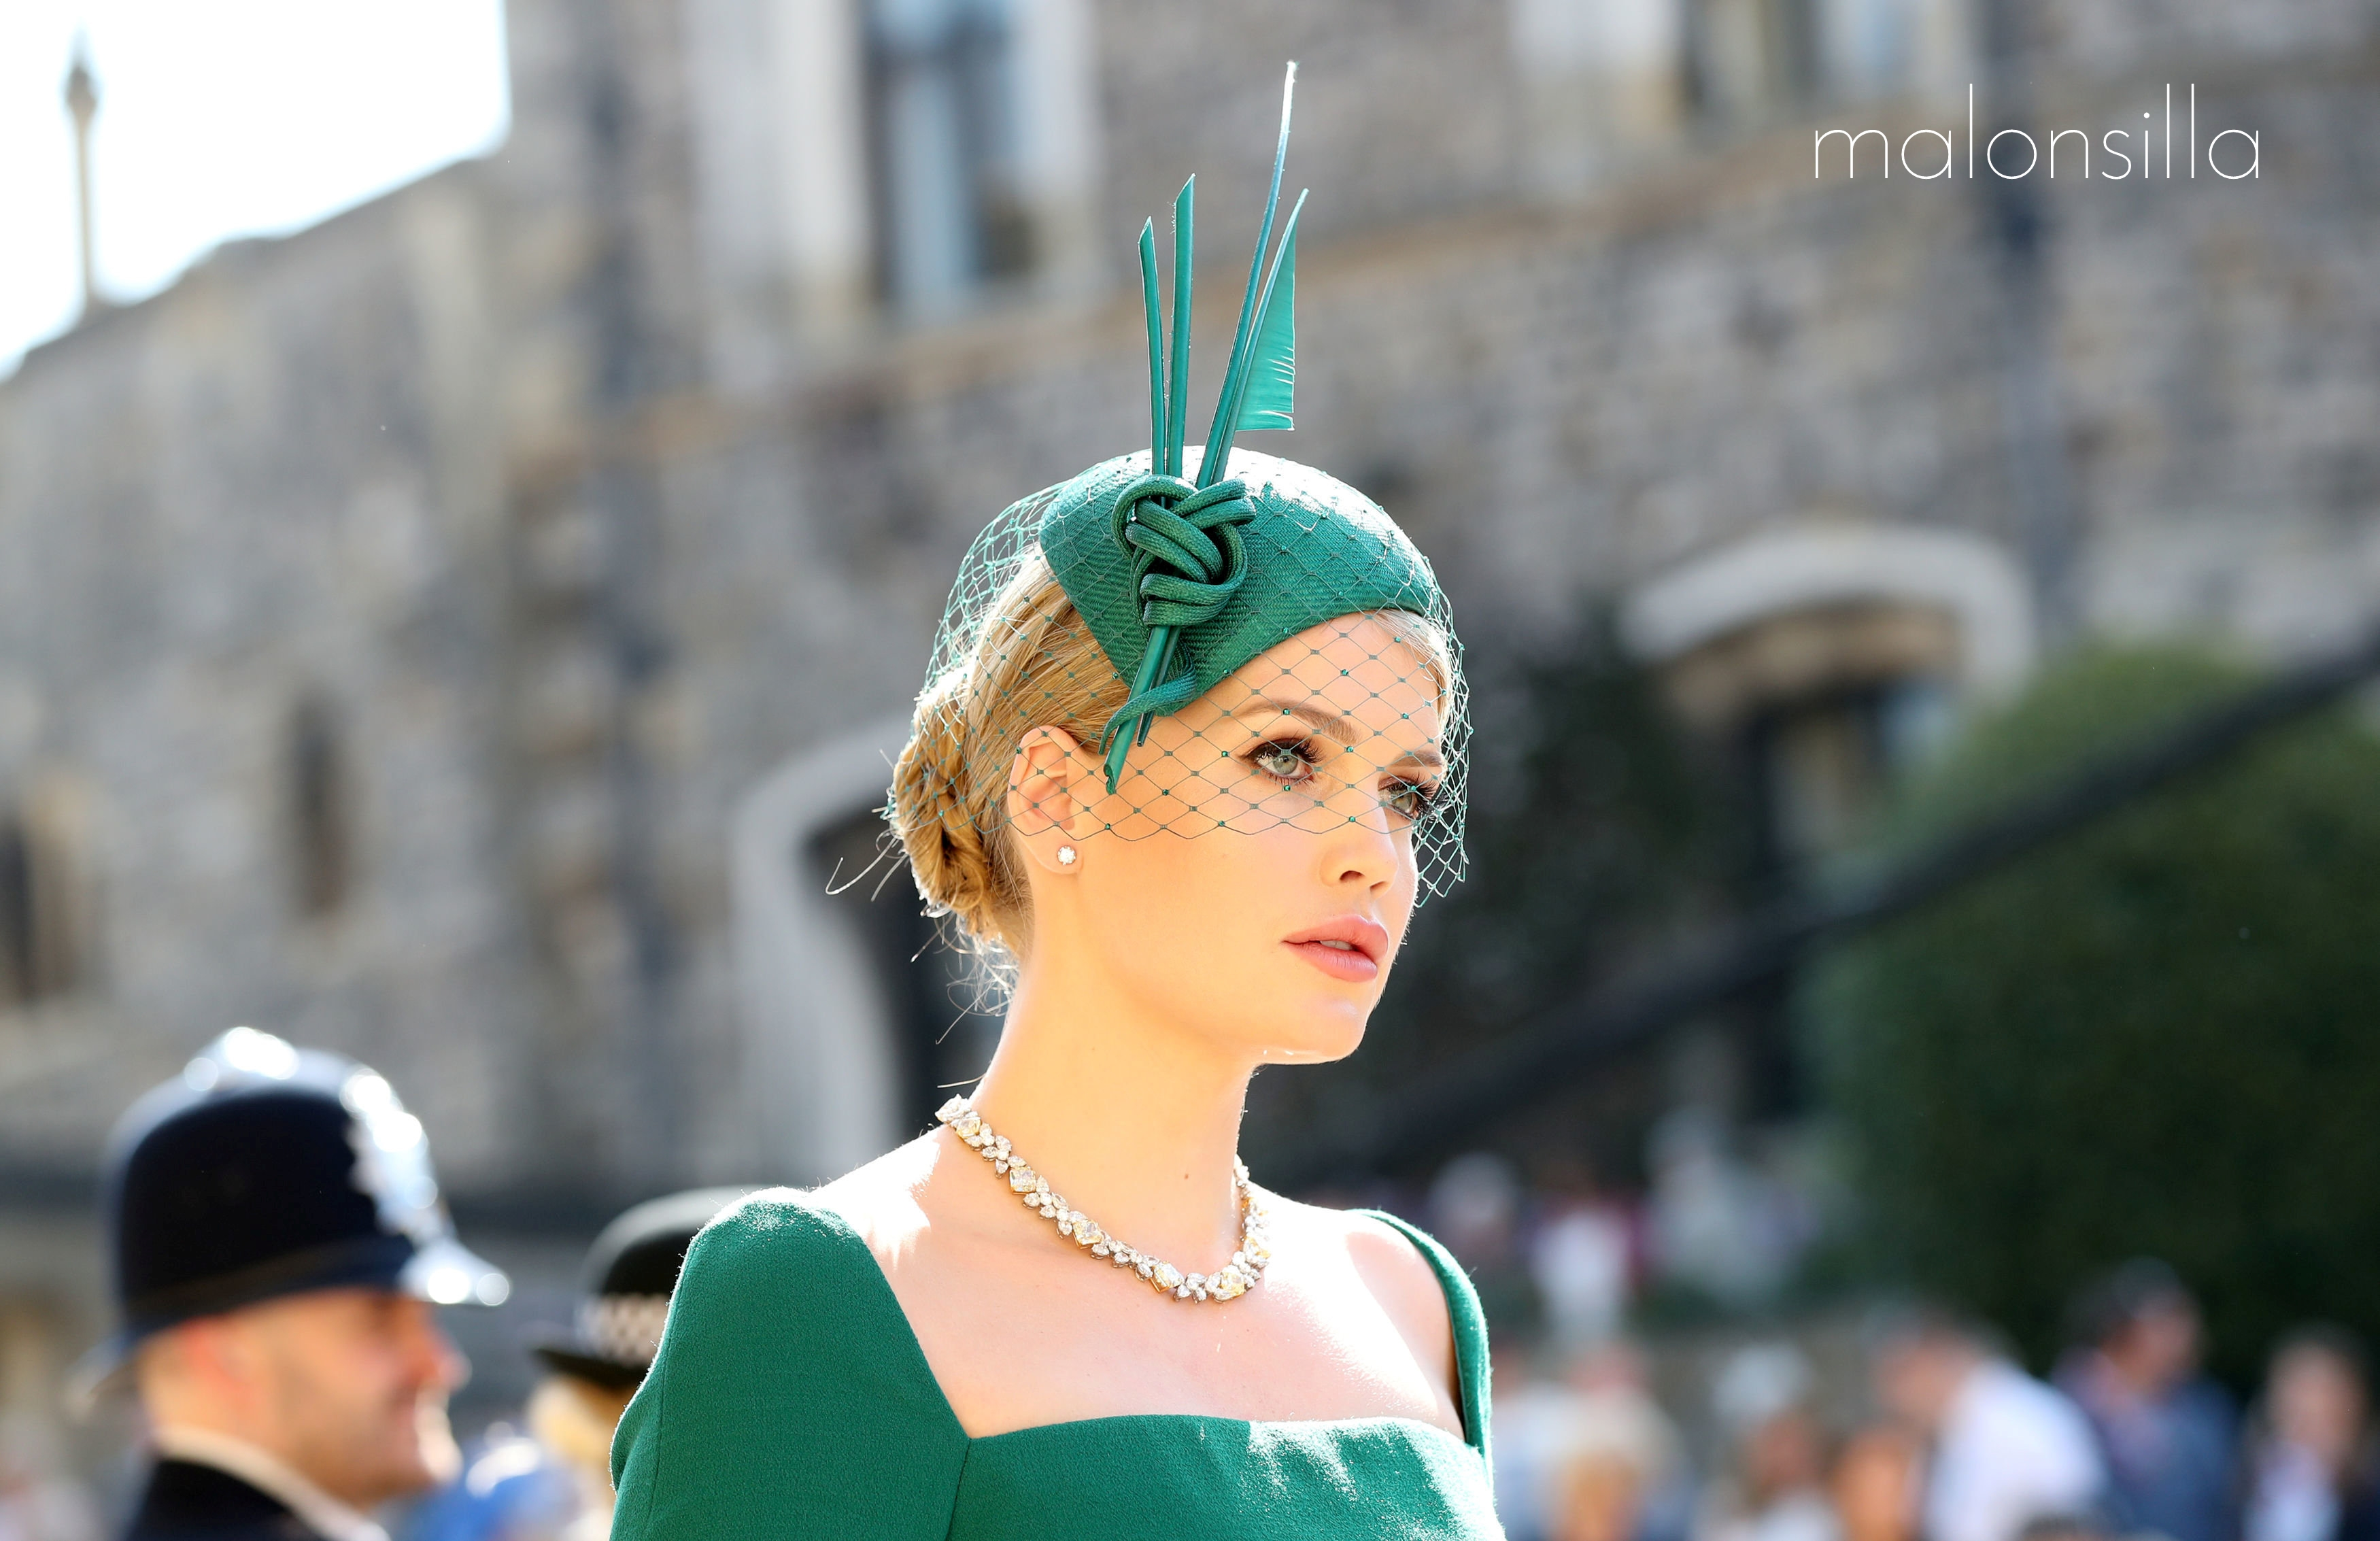 Lady Kitty Spencer en la boda real de Harry y Megan con tocado tipo casquete en verde botella